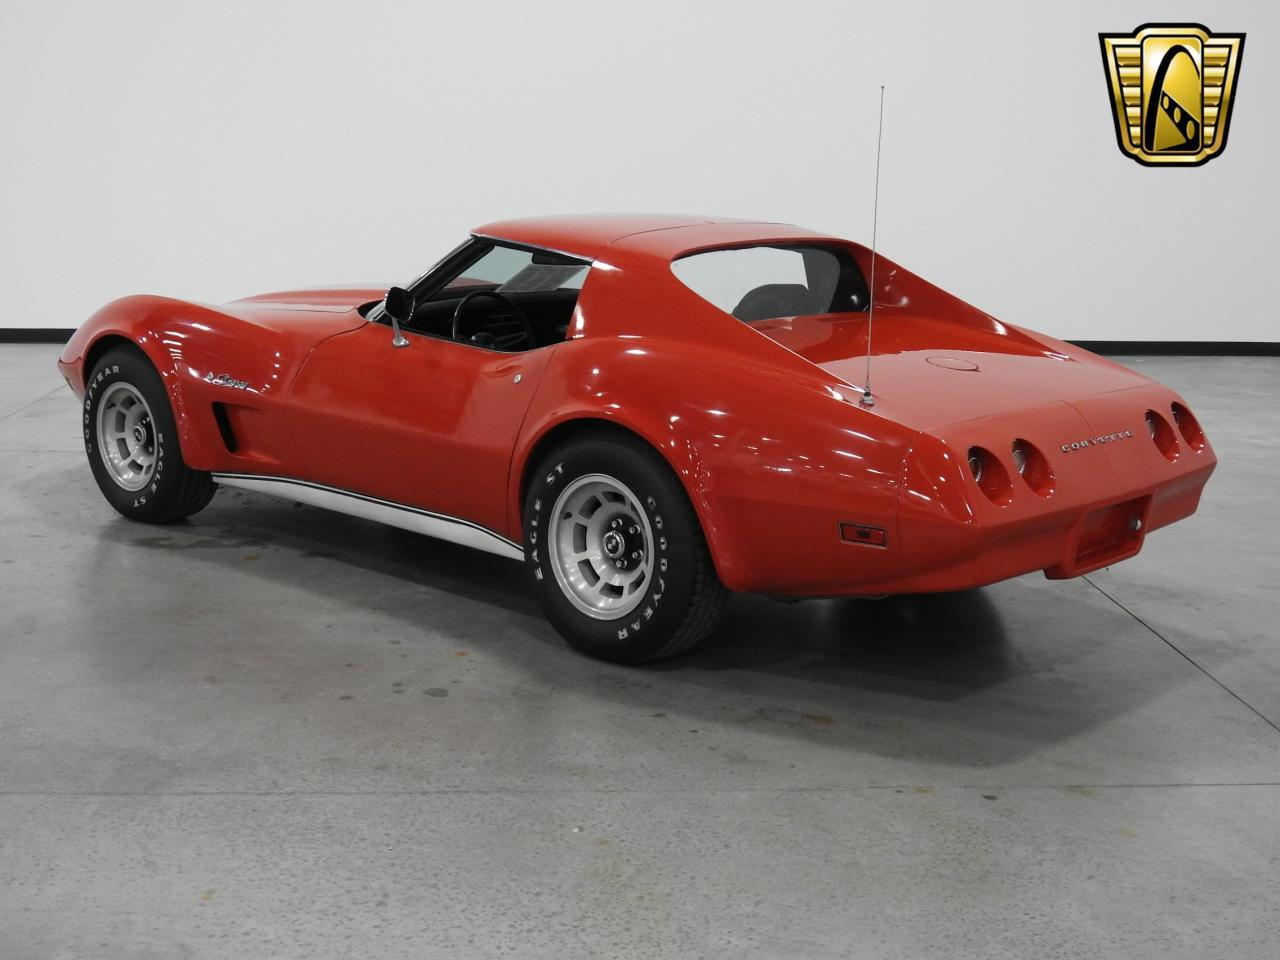 Large Picture of '74 Corvette located in Kenosha Wisconsin - $17,995.00 Offered by Gateway Classic Cars - Milwaukee - L7ZH